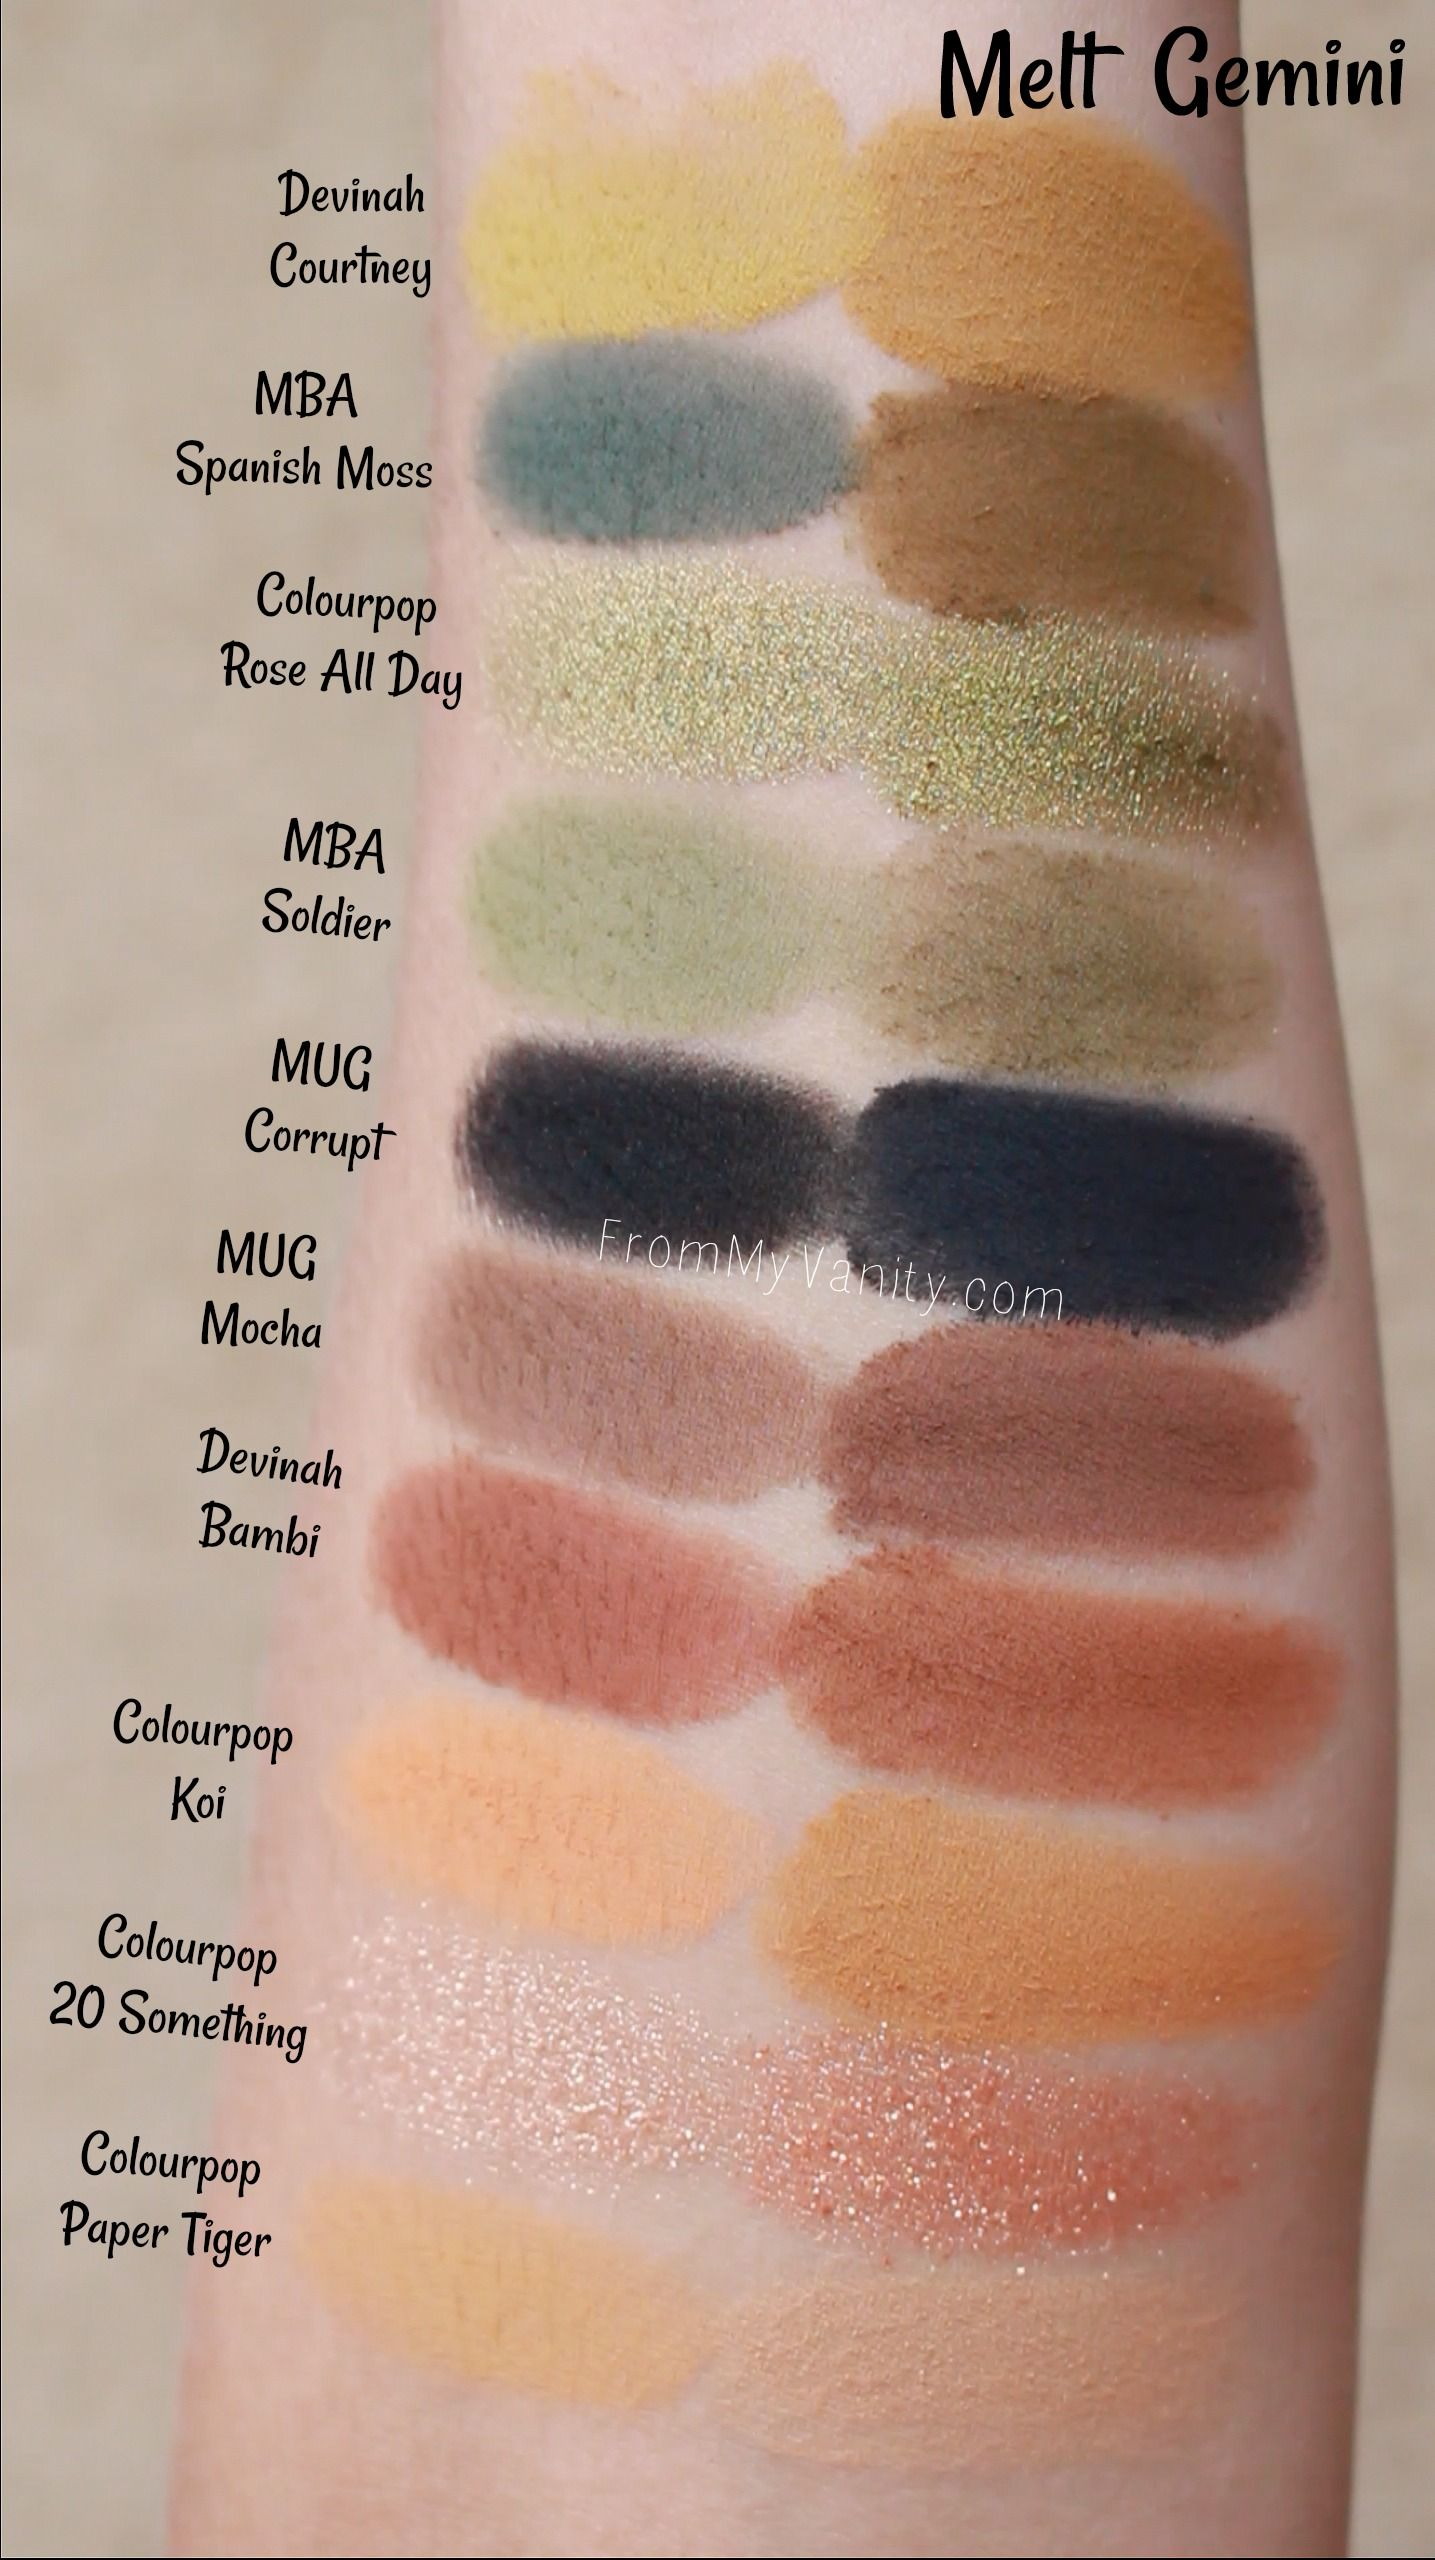 Single Eyeshadow Dupes For The Melt Gemini Palette